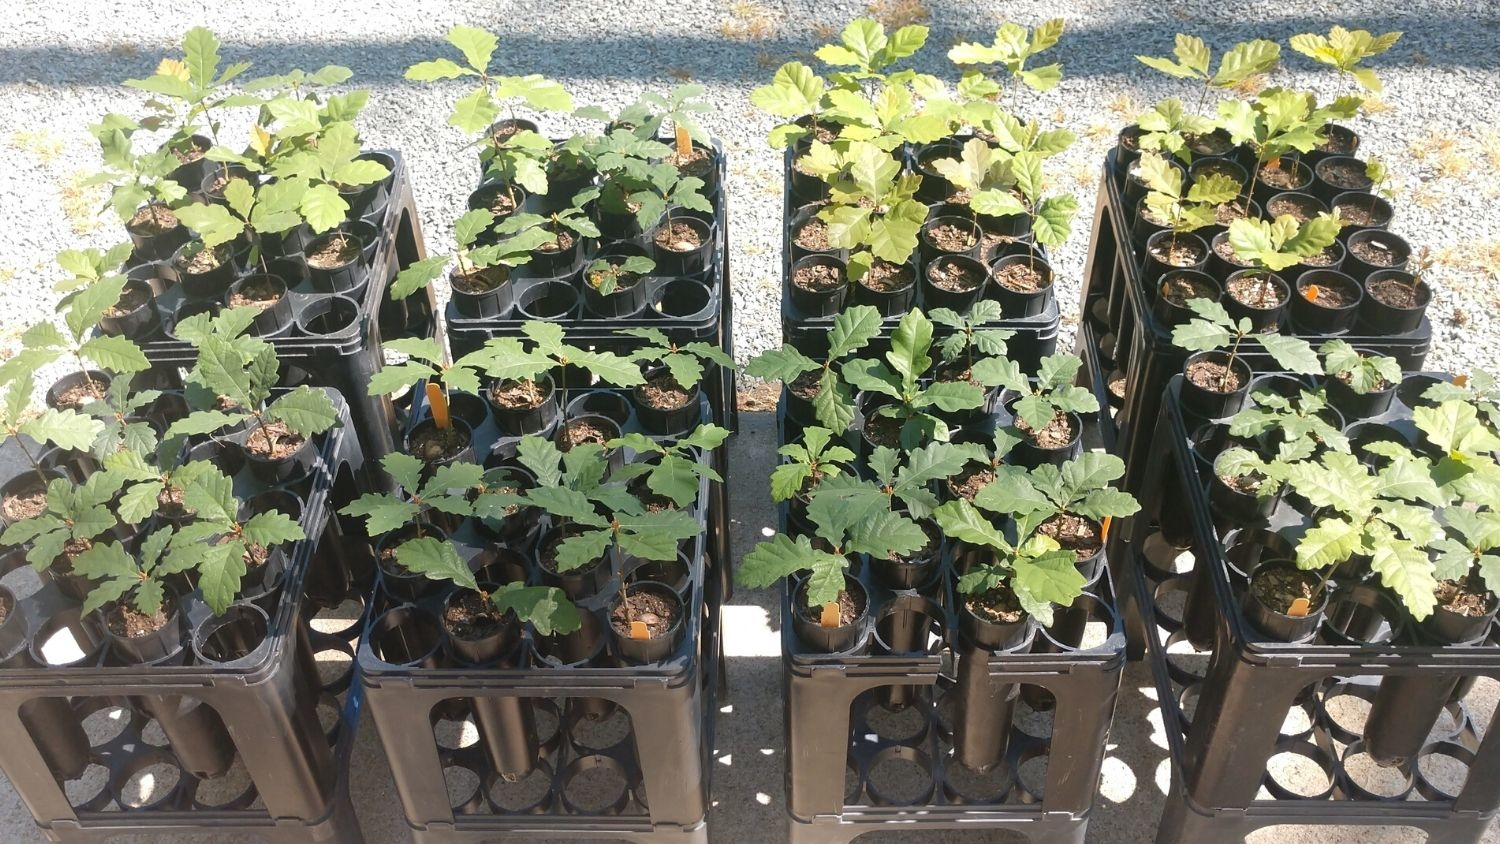 Young oak trees growing at NCState - NCState Tree Experts Grow Oaks to Honor Marines - Forestry and Environmental Resources NCState University